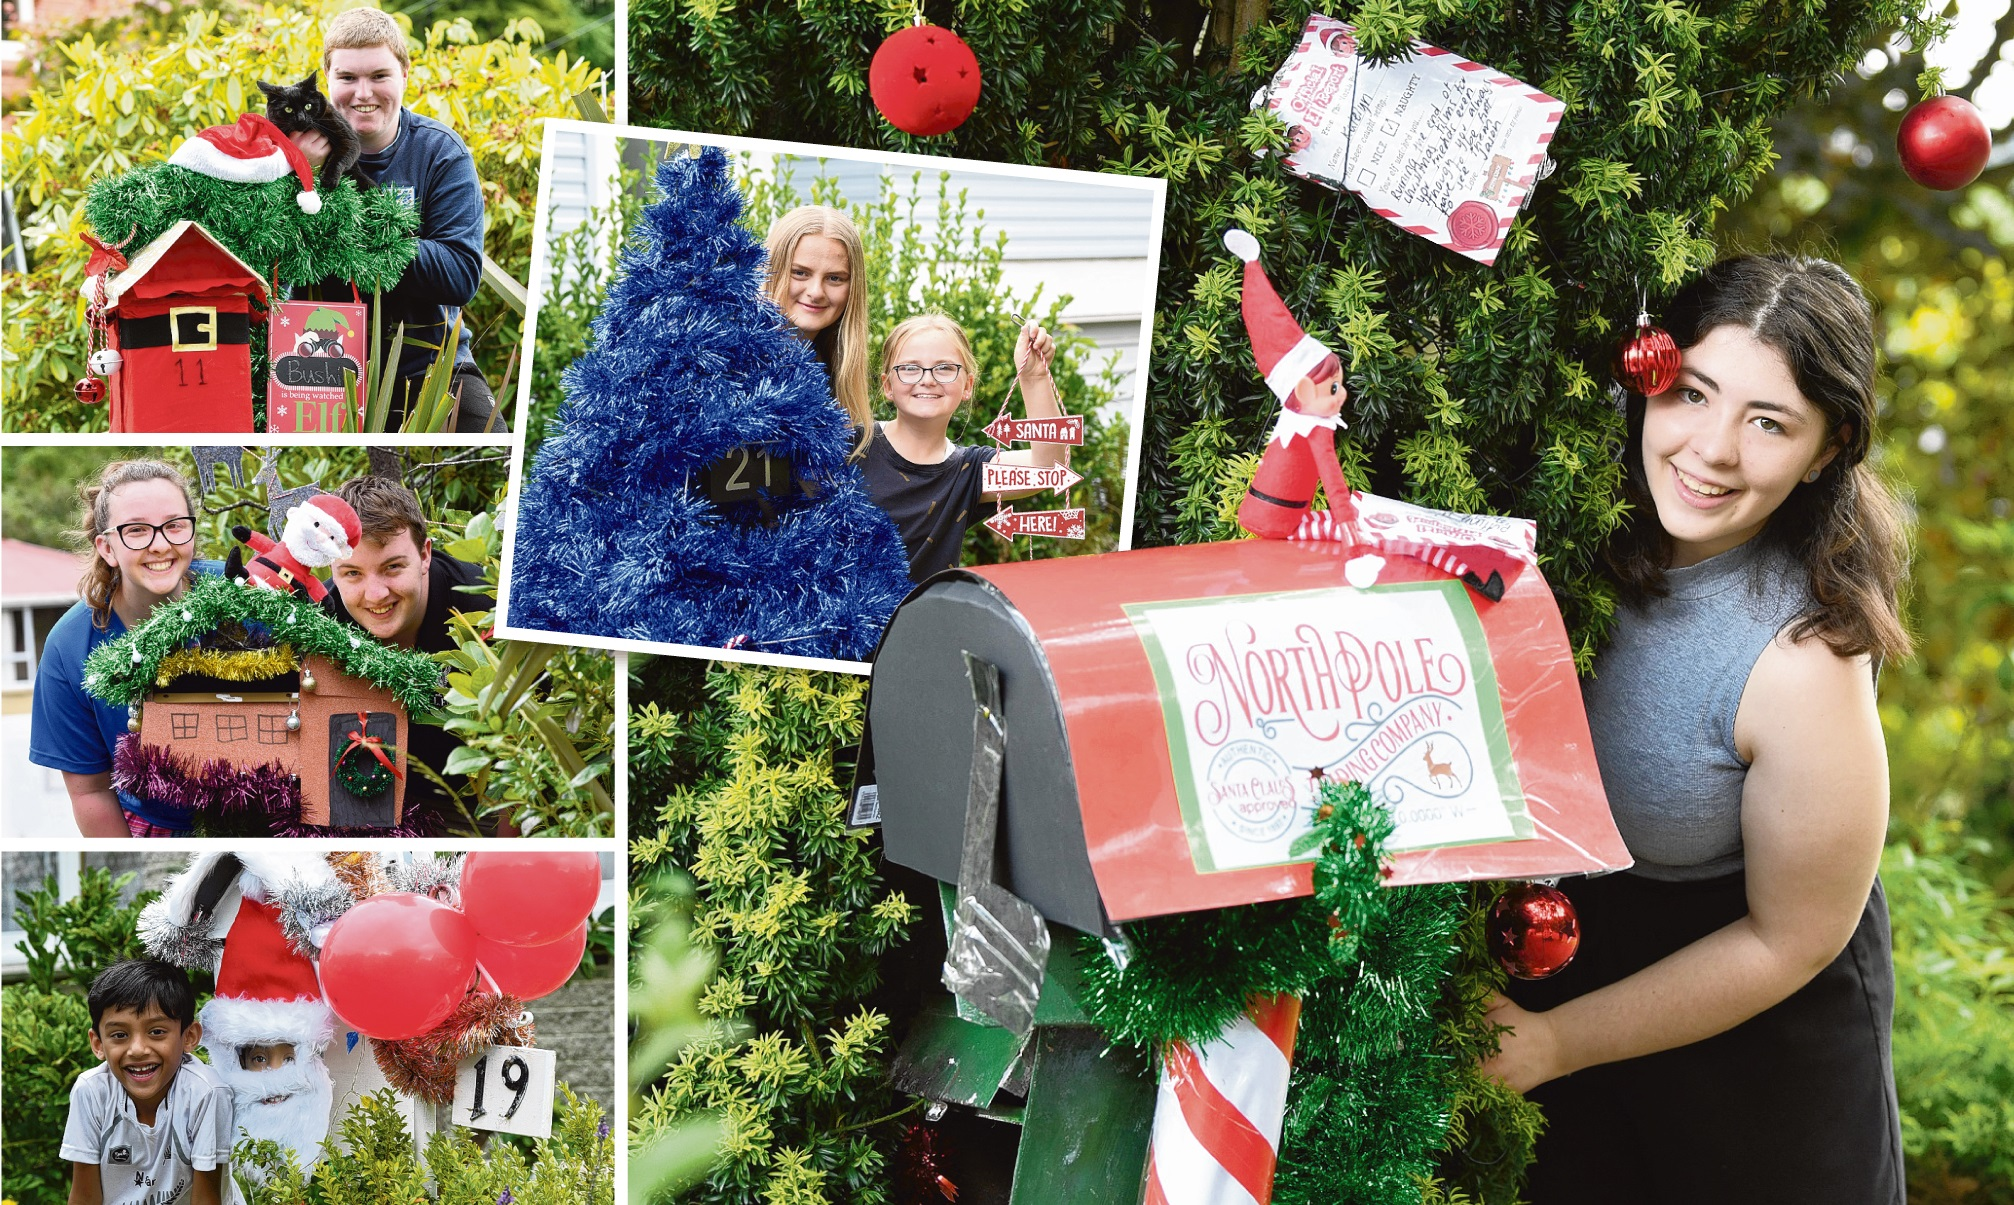 Jason St residents and their decorated letterboxes. Main photo: Mikayla Cameron (20); clockwise from bottom: Dan Mathew (7), Arwen (16) and Angus Weir (19), Keenan West (17) and Blue the cat, and Amelia (14) and Katelyn Coster (12). Photos: Stephen Jaquie